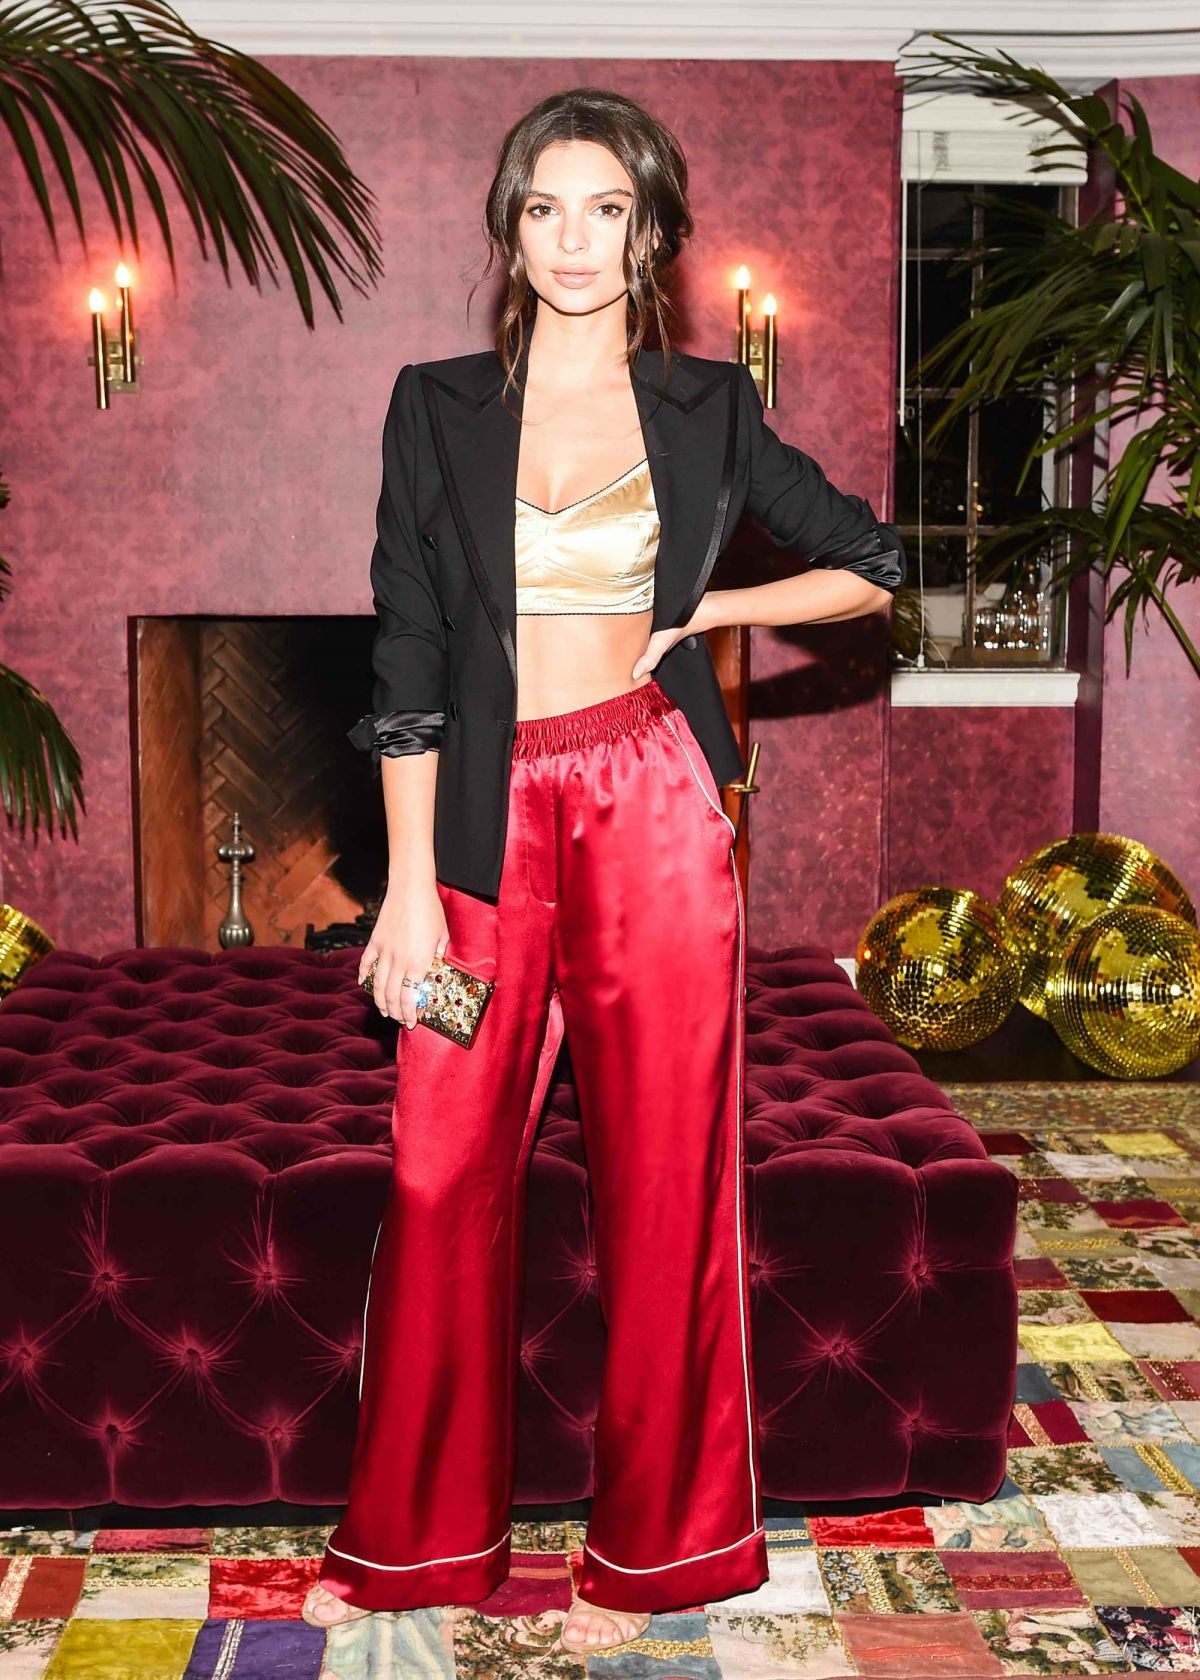 EMILY RATAJKOWSKI at Dolce & Gabbana Pyjama Party in Los Angeles 02/24/2016